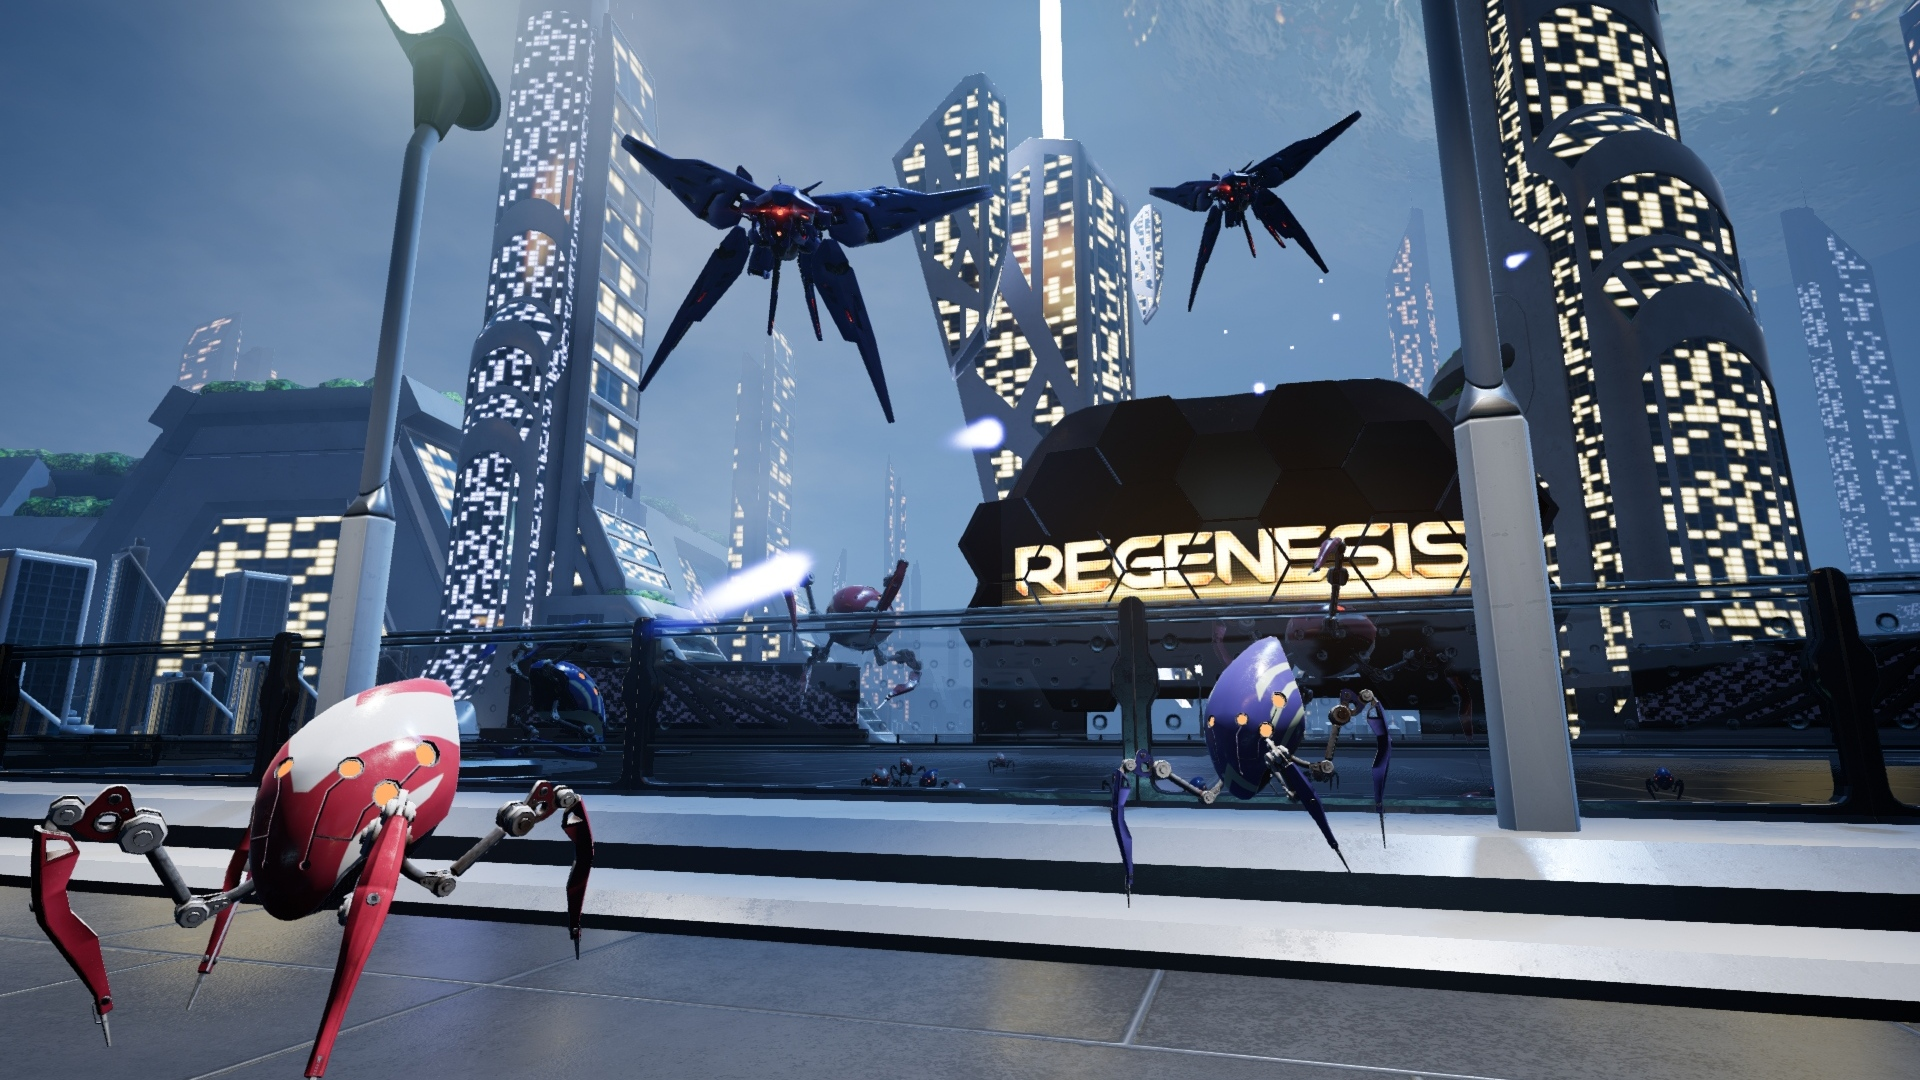 Regenesis Arcade Location based VR